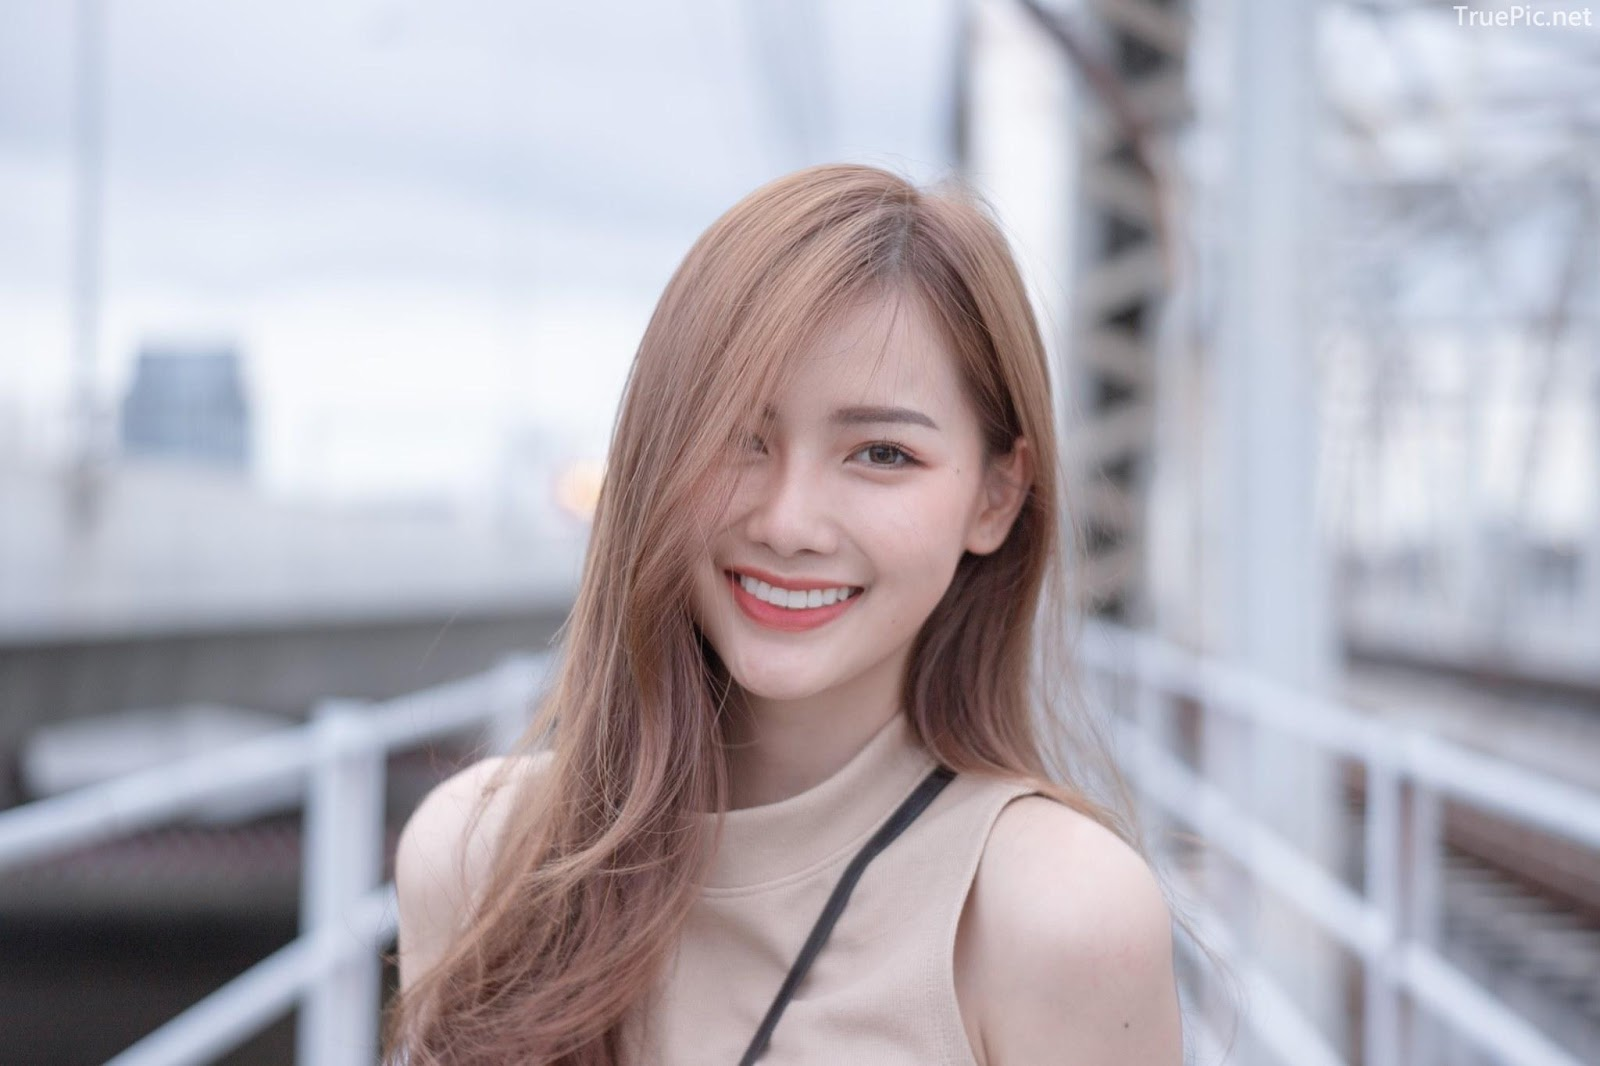 Thailand beautiful model - Pla Kewalin Udomaksorn - A beautiful morning with a cute girl - Picture 8